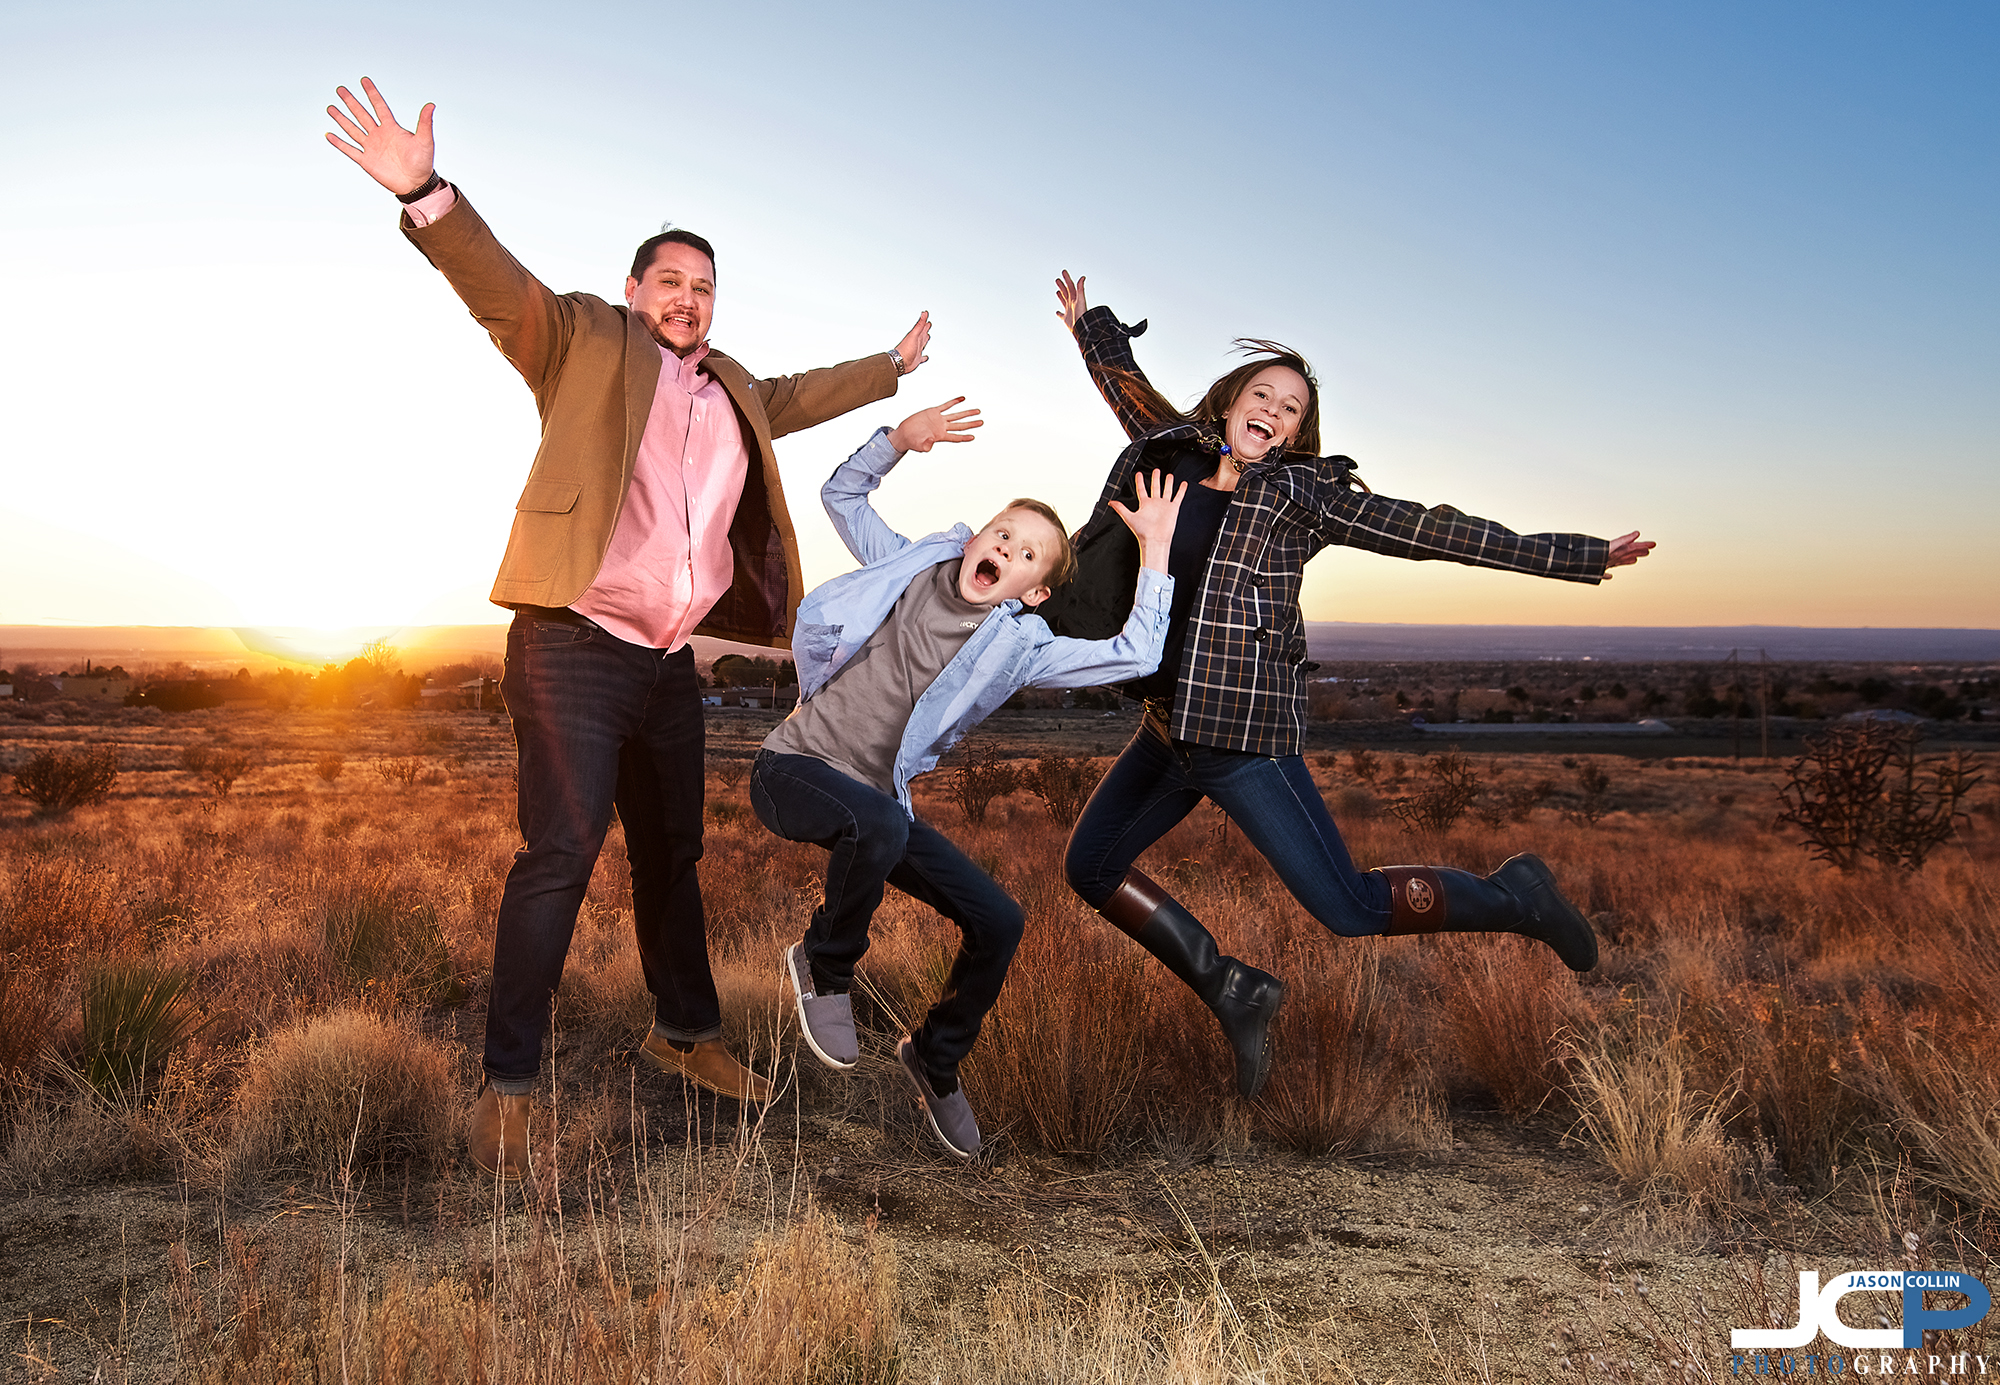 """Do you have a family portrait this much fun from Albuquerque New Mexico? - Nikon D750 with Tamron 15-30mm @ f/4 1/500th ISO 800 - Strobist: SB-800 in 32"""" octosoftbox and SB-600 with cap diffuser triggered by Pocket Wizard Flex TT5 high speed flash sync"""